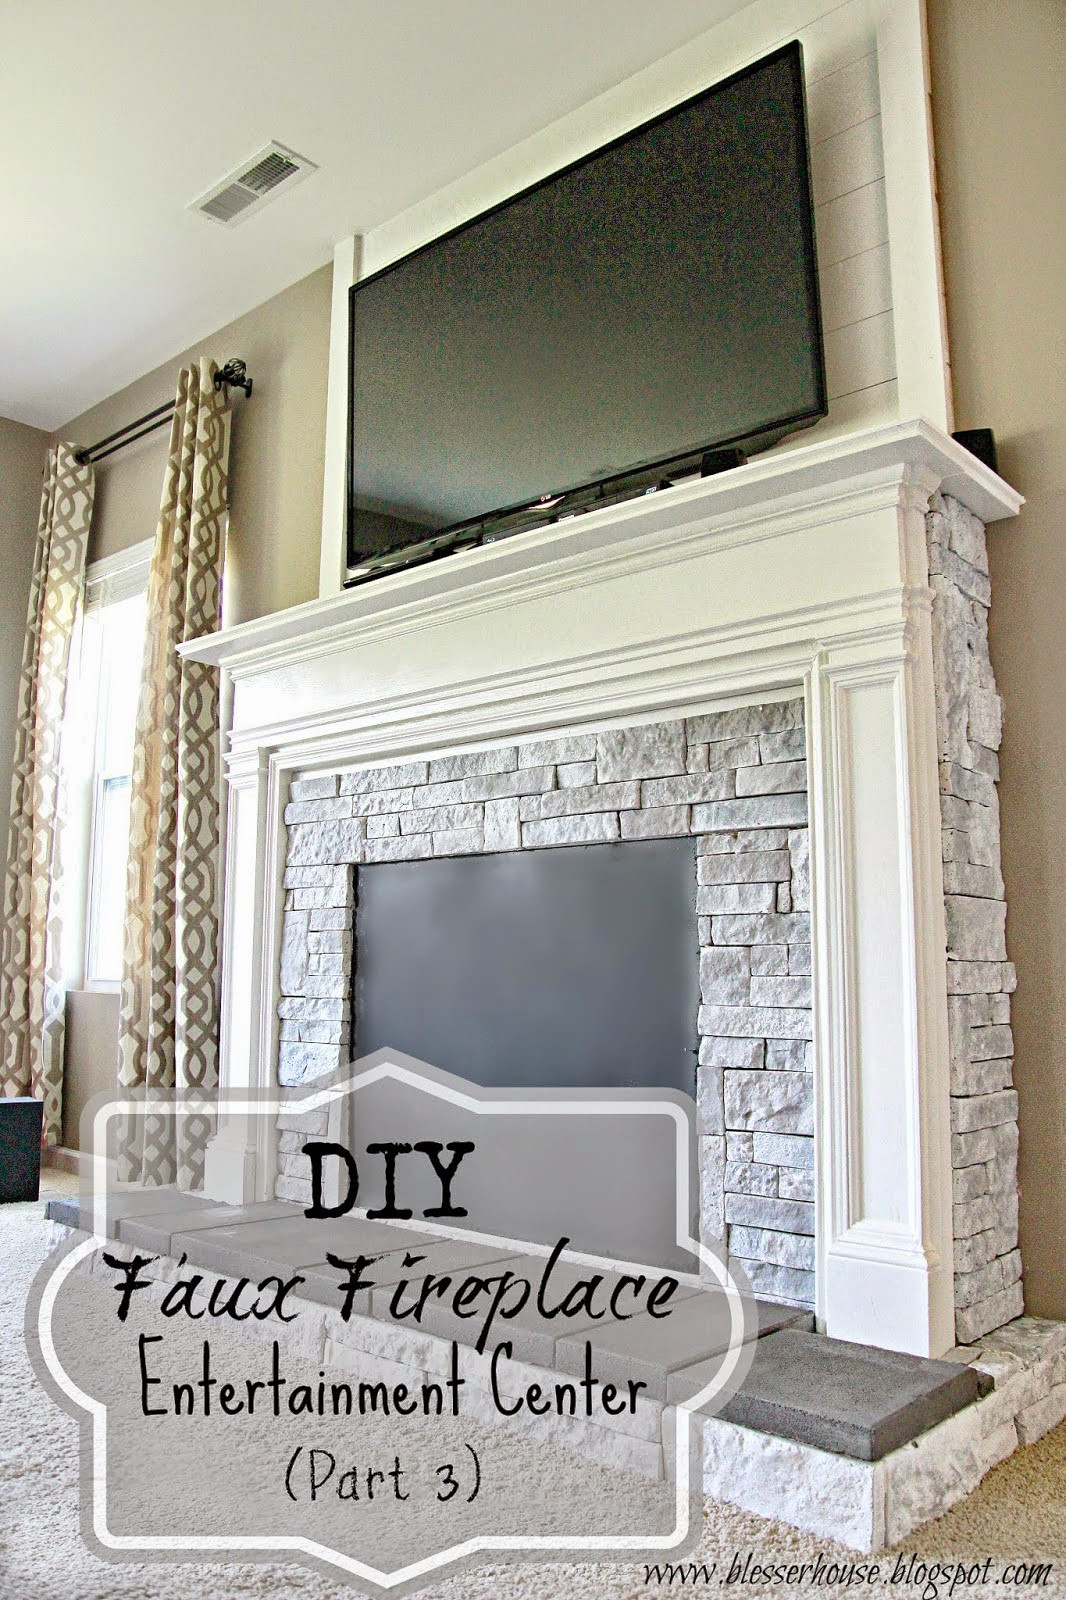 Astonishing The 20 Best Ideas For Diy Fake Fireplace Best Collections Home Interior And Landscaping Ologienasavecom